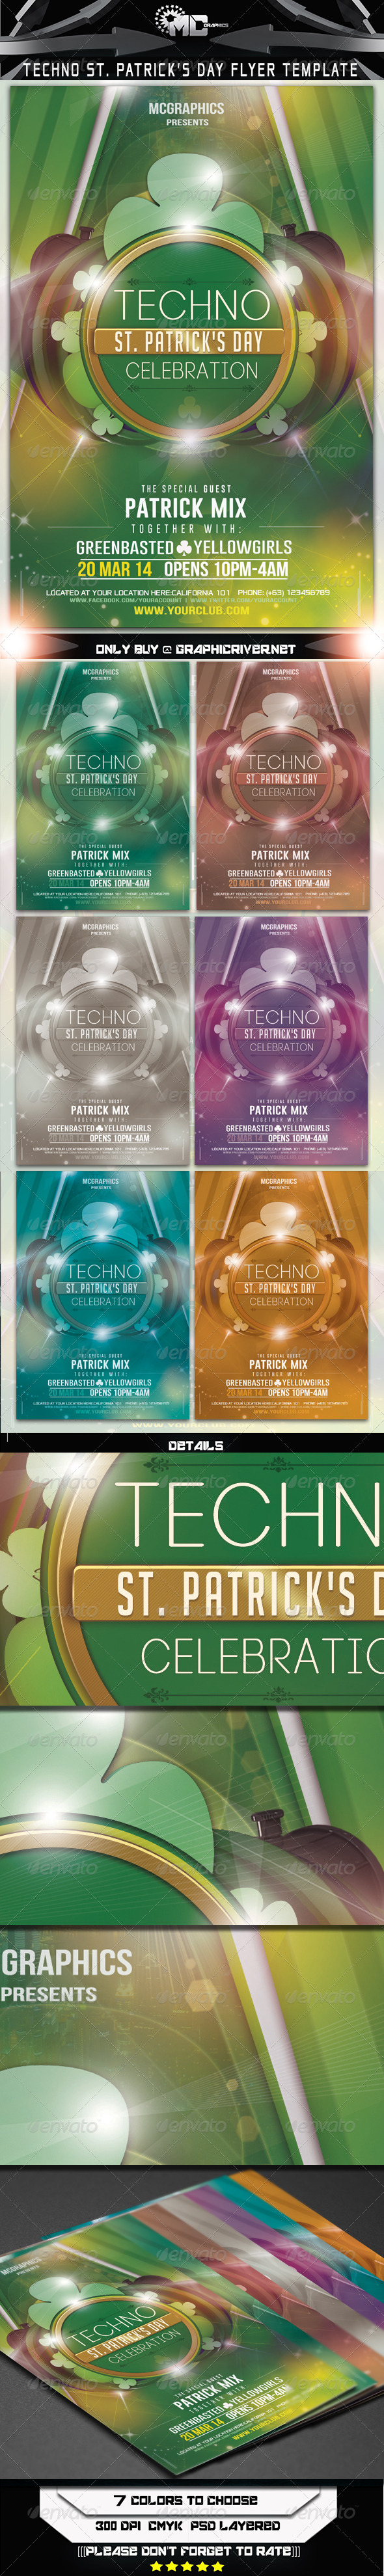 Techno St. Patrick's Day Flyer Template - Flyers Print Templates